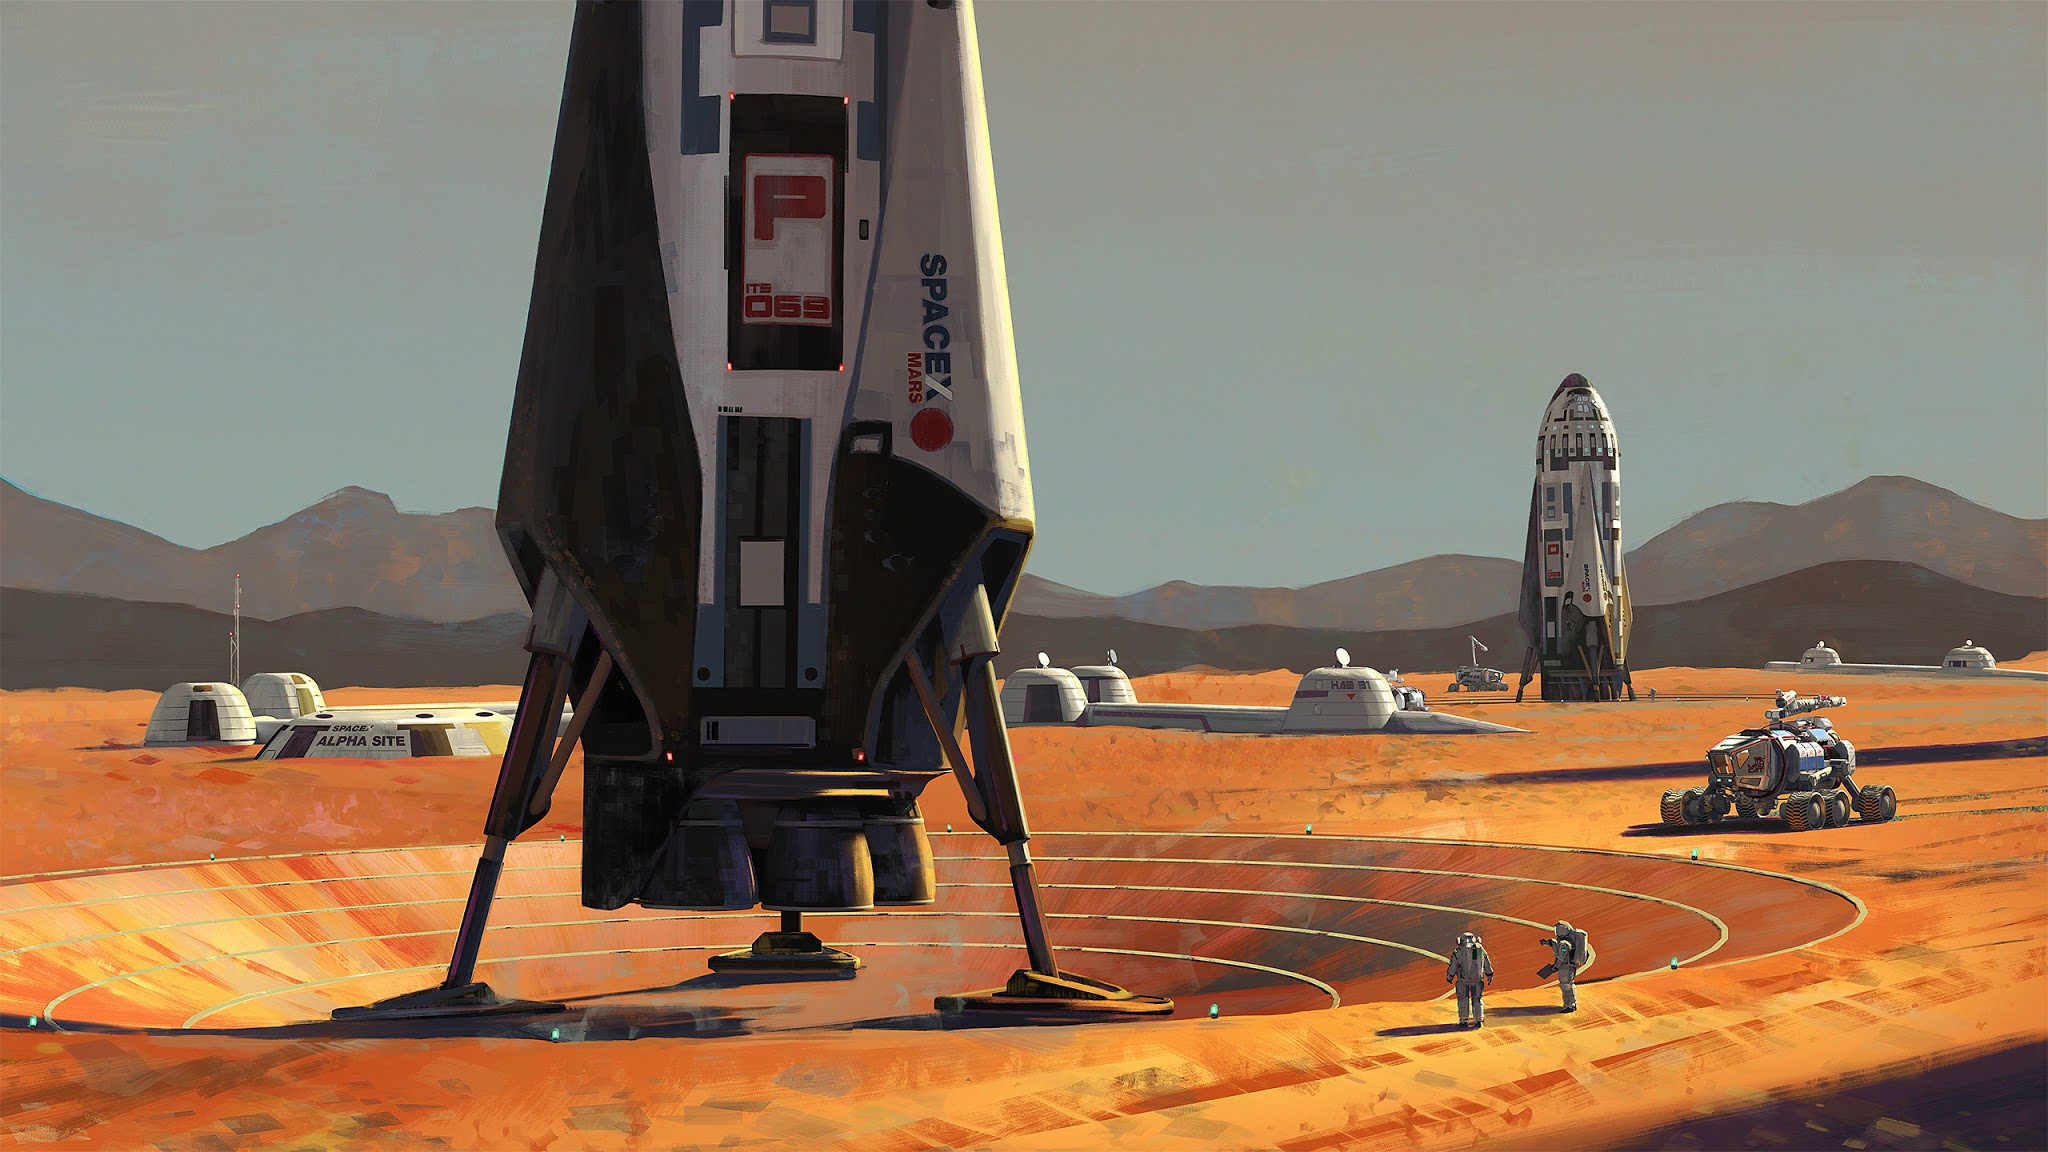 human Mars: SpaceX ITS spaceships at Mars Base Alpha by ...